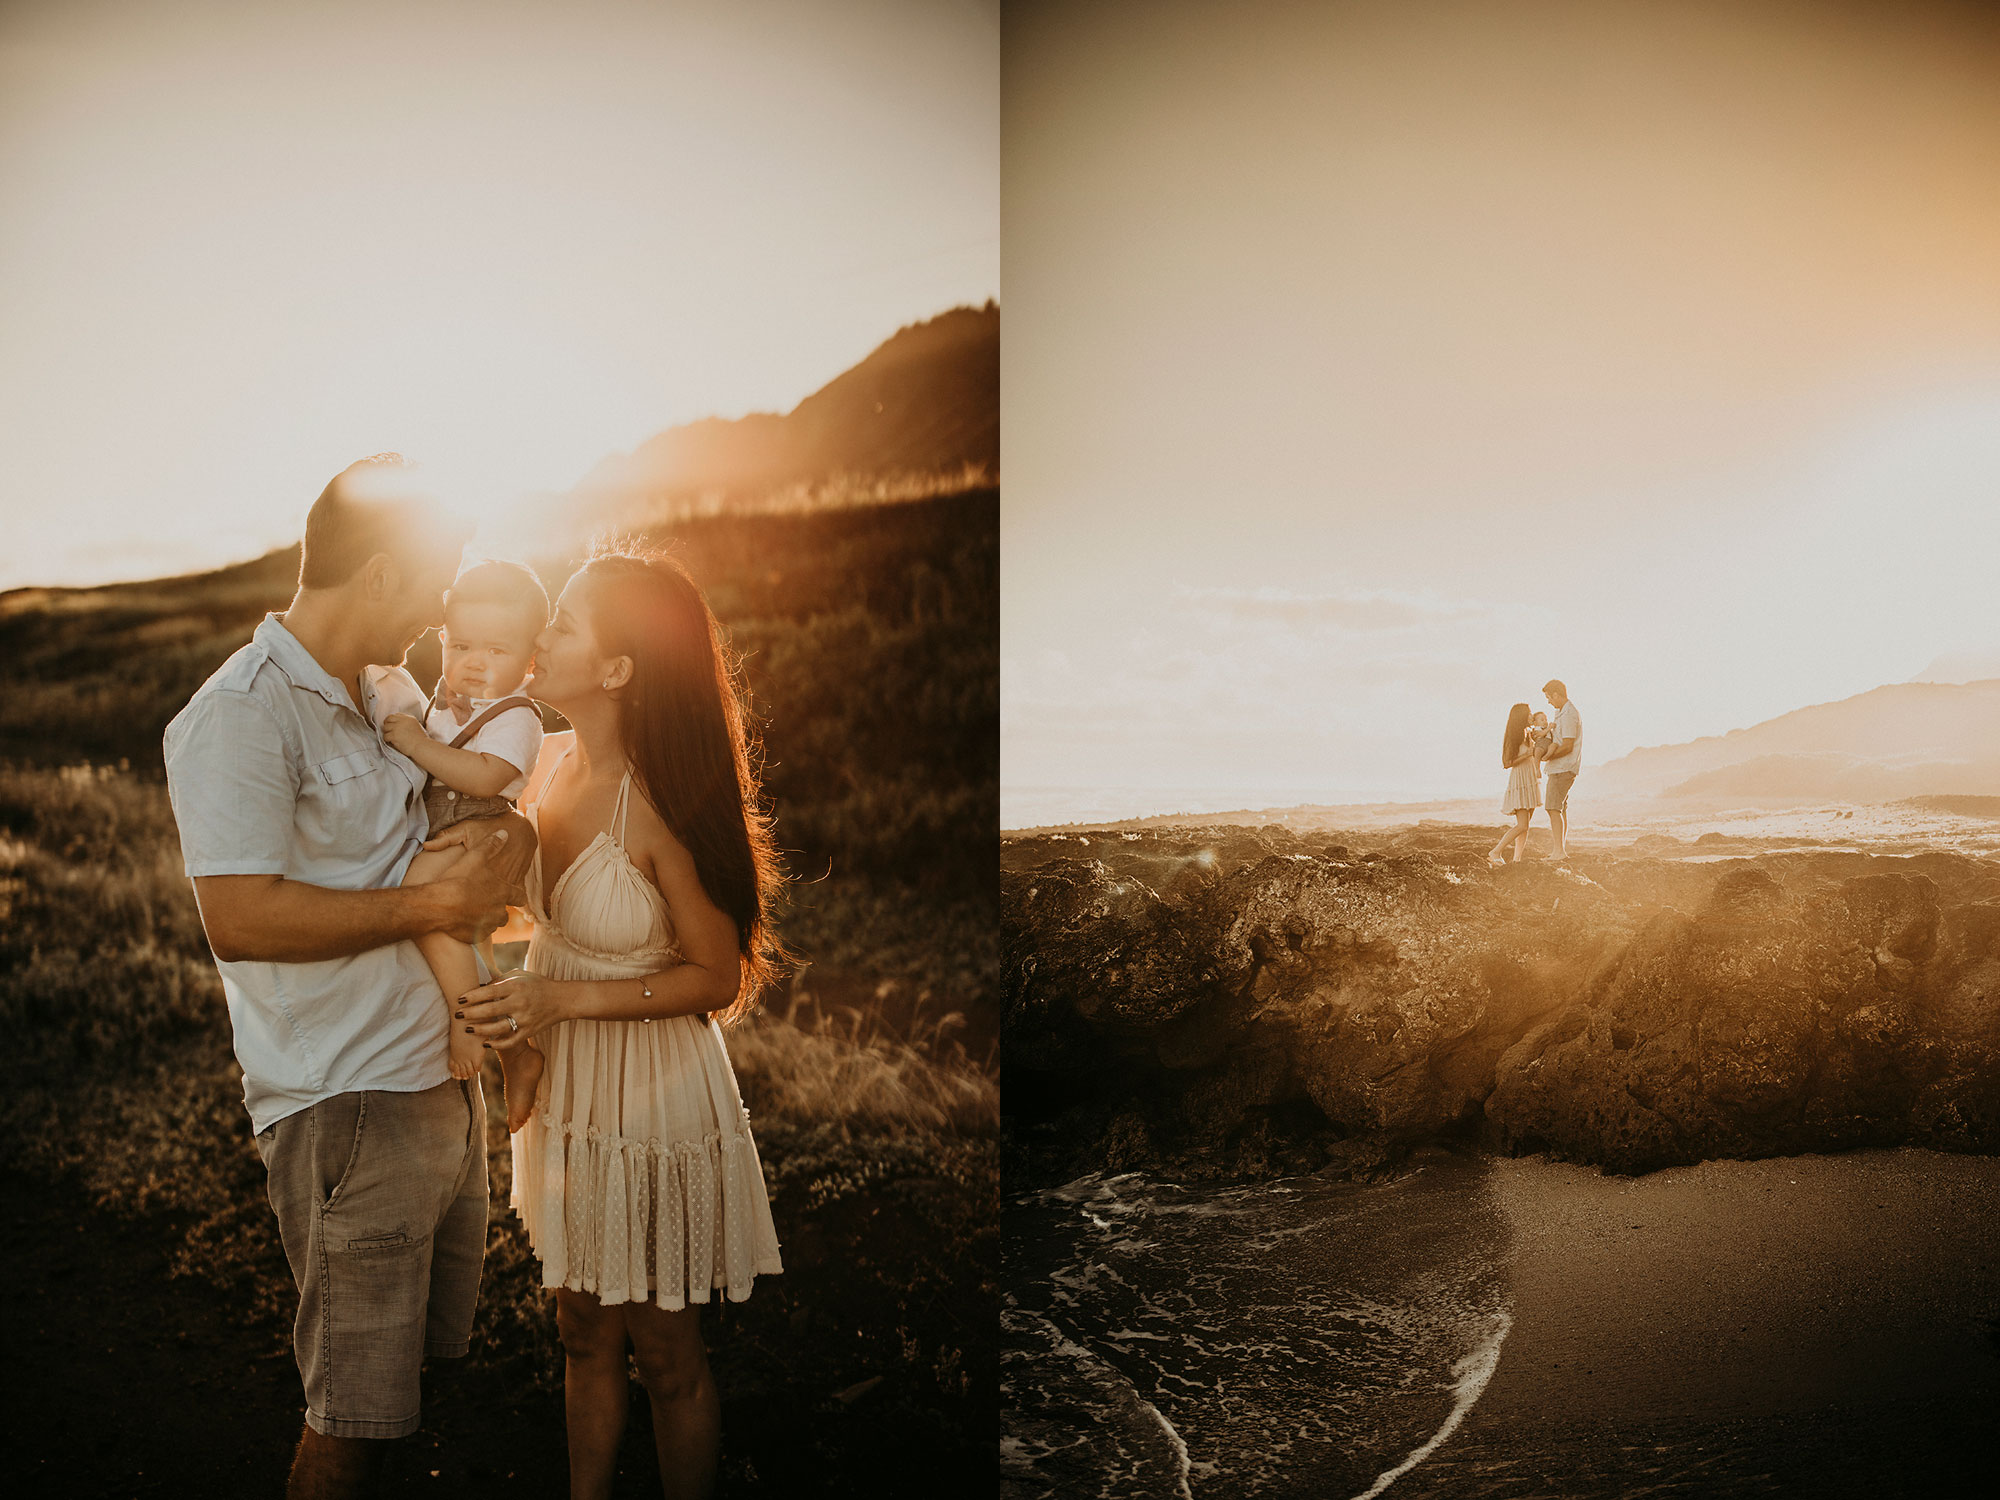 Kaena-Point-Sunrise-Family-Photographer-Hawaii-11.jpg